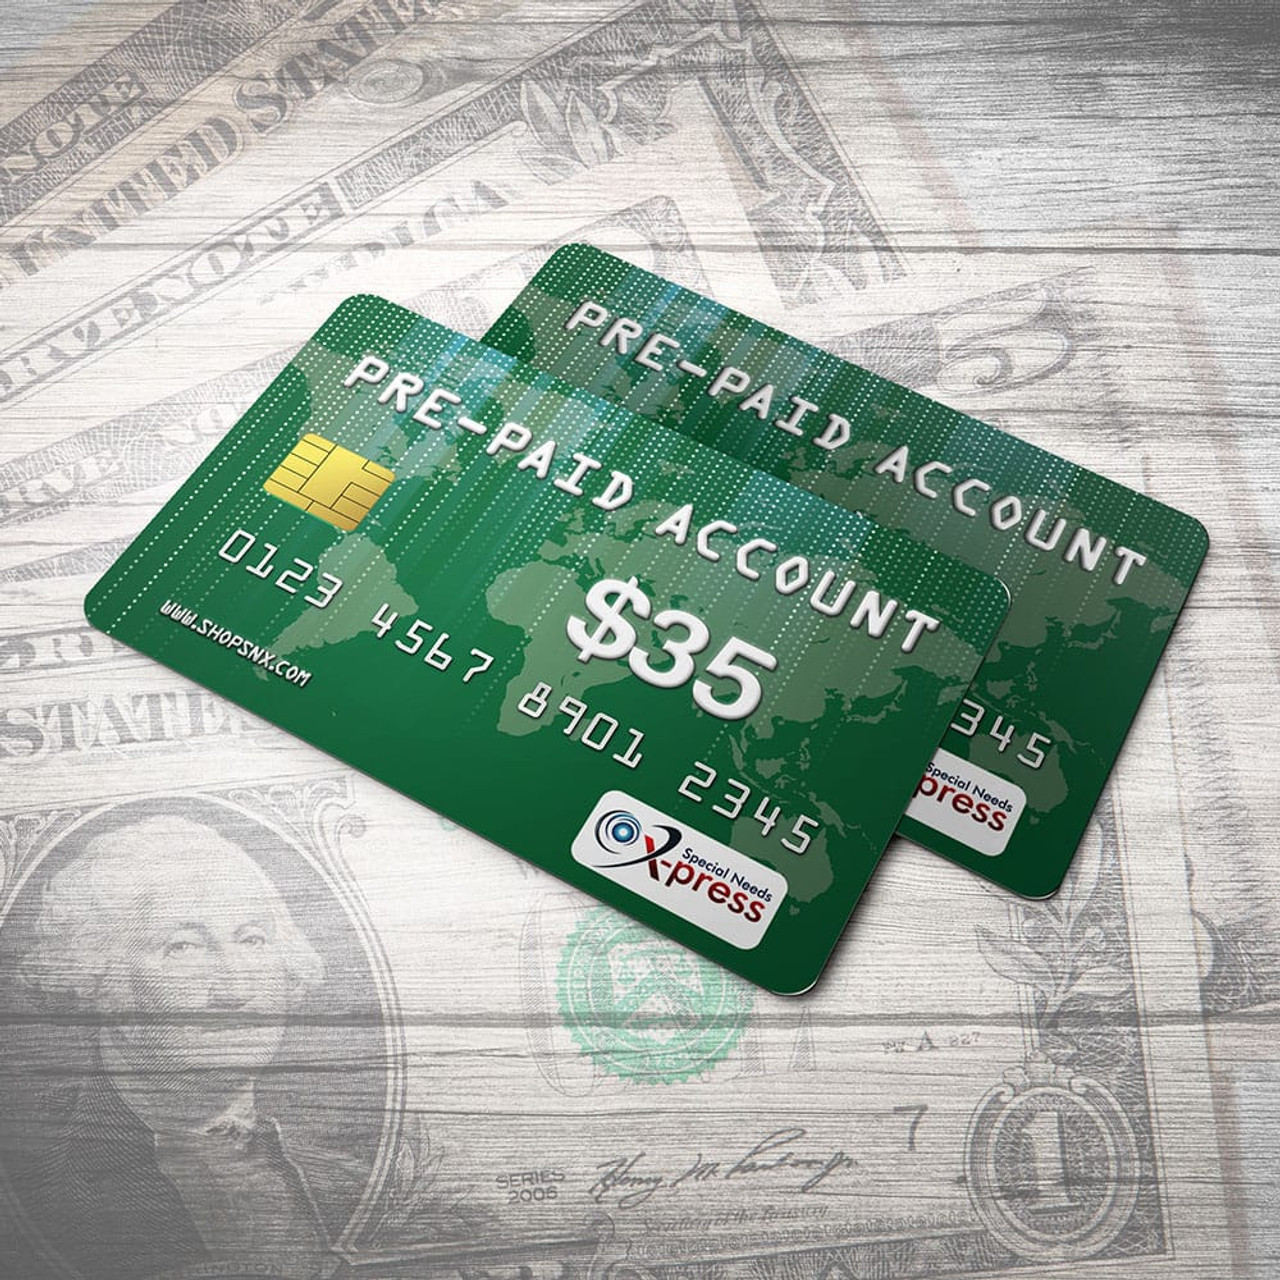 Pre-Paid Account for $35.00